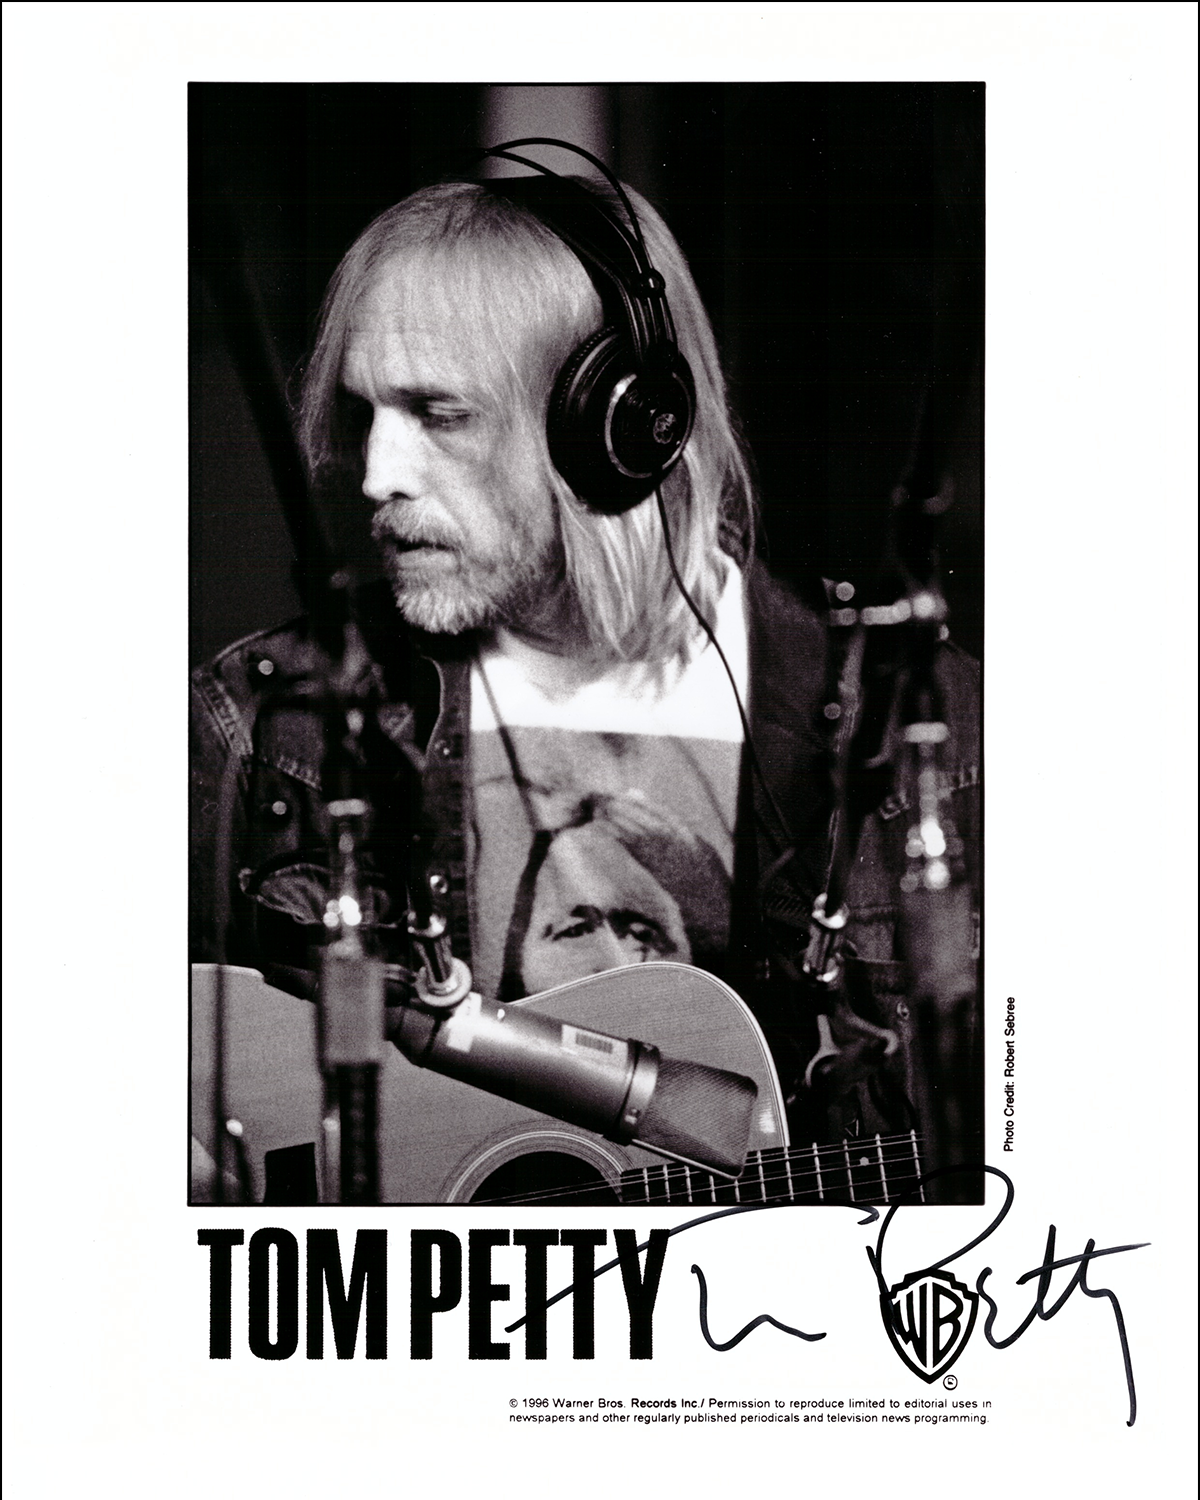 Tom Petty Photo #2